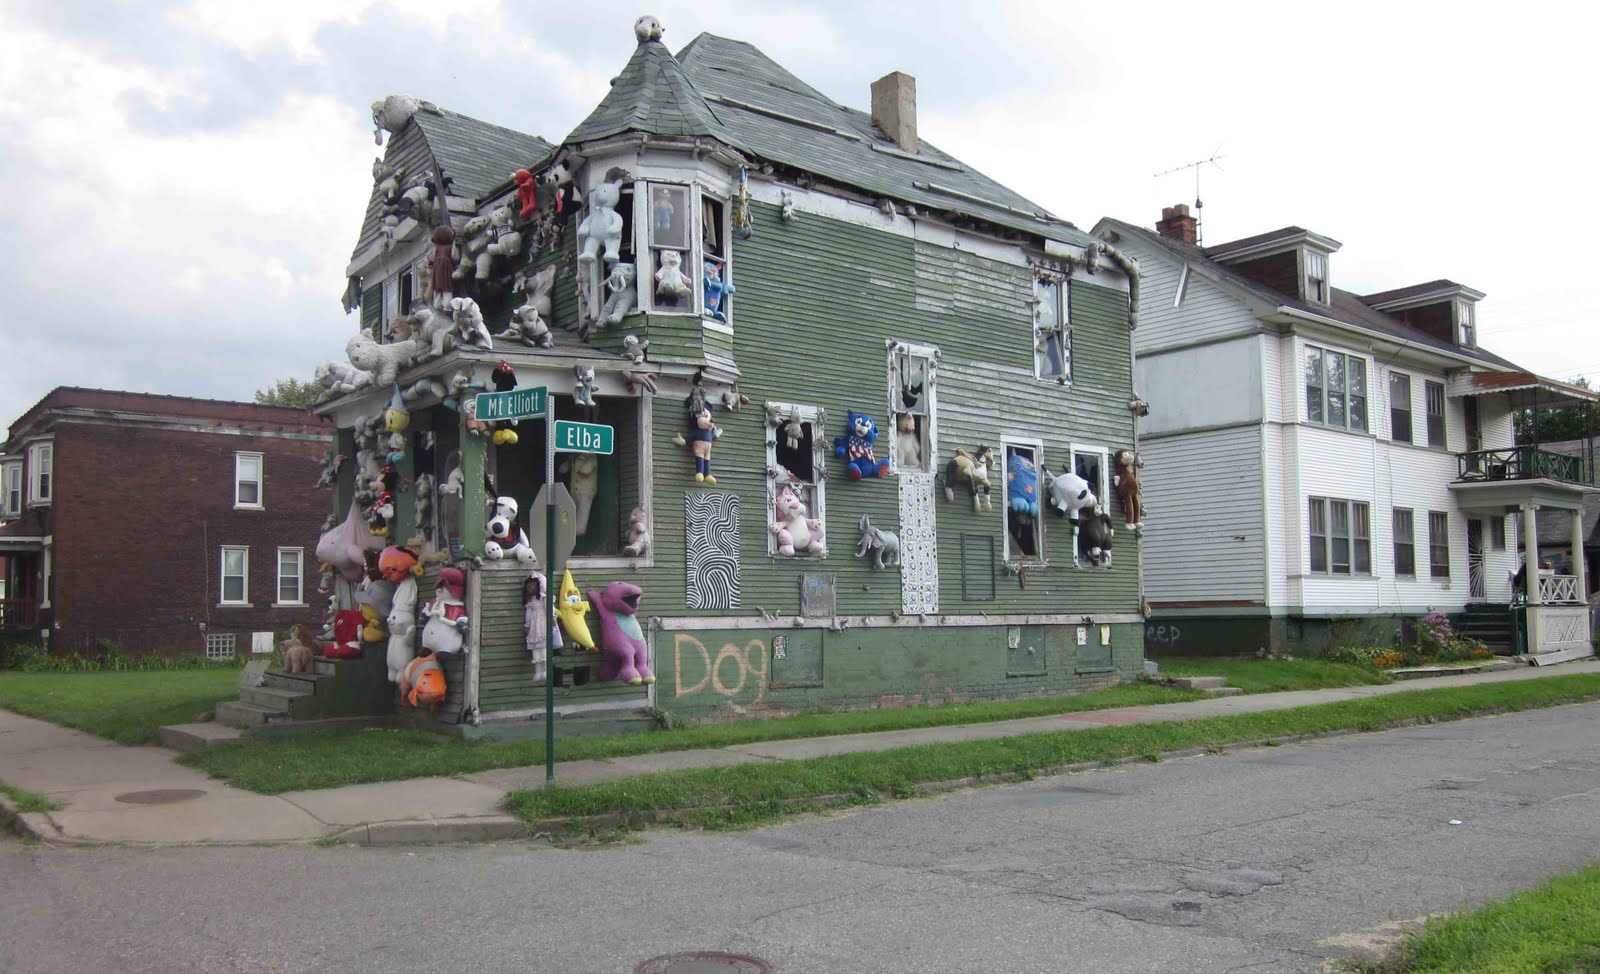 21st foreclosures with Art And Transformation In Detroit on Trustees Sales further 23 The New Deal in addition 1715664 in addition 1 Bedroom Condo For Sale In The Orabella Cubao Metro Manila 2798428 furthermore 4.